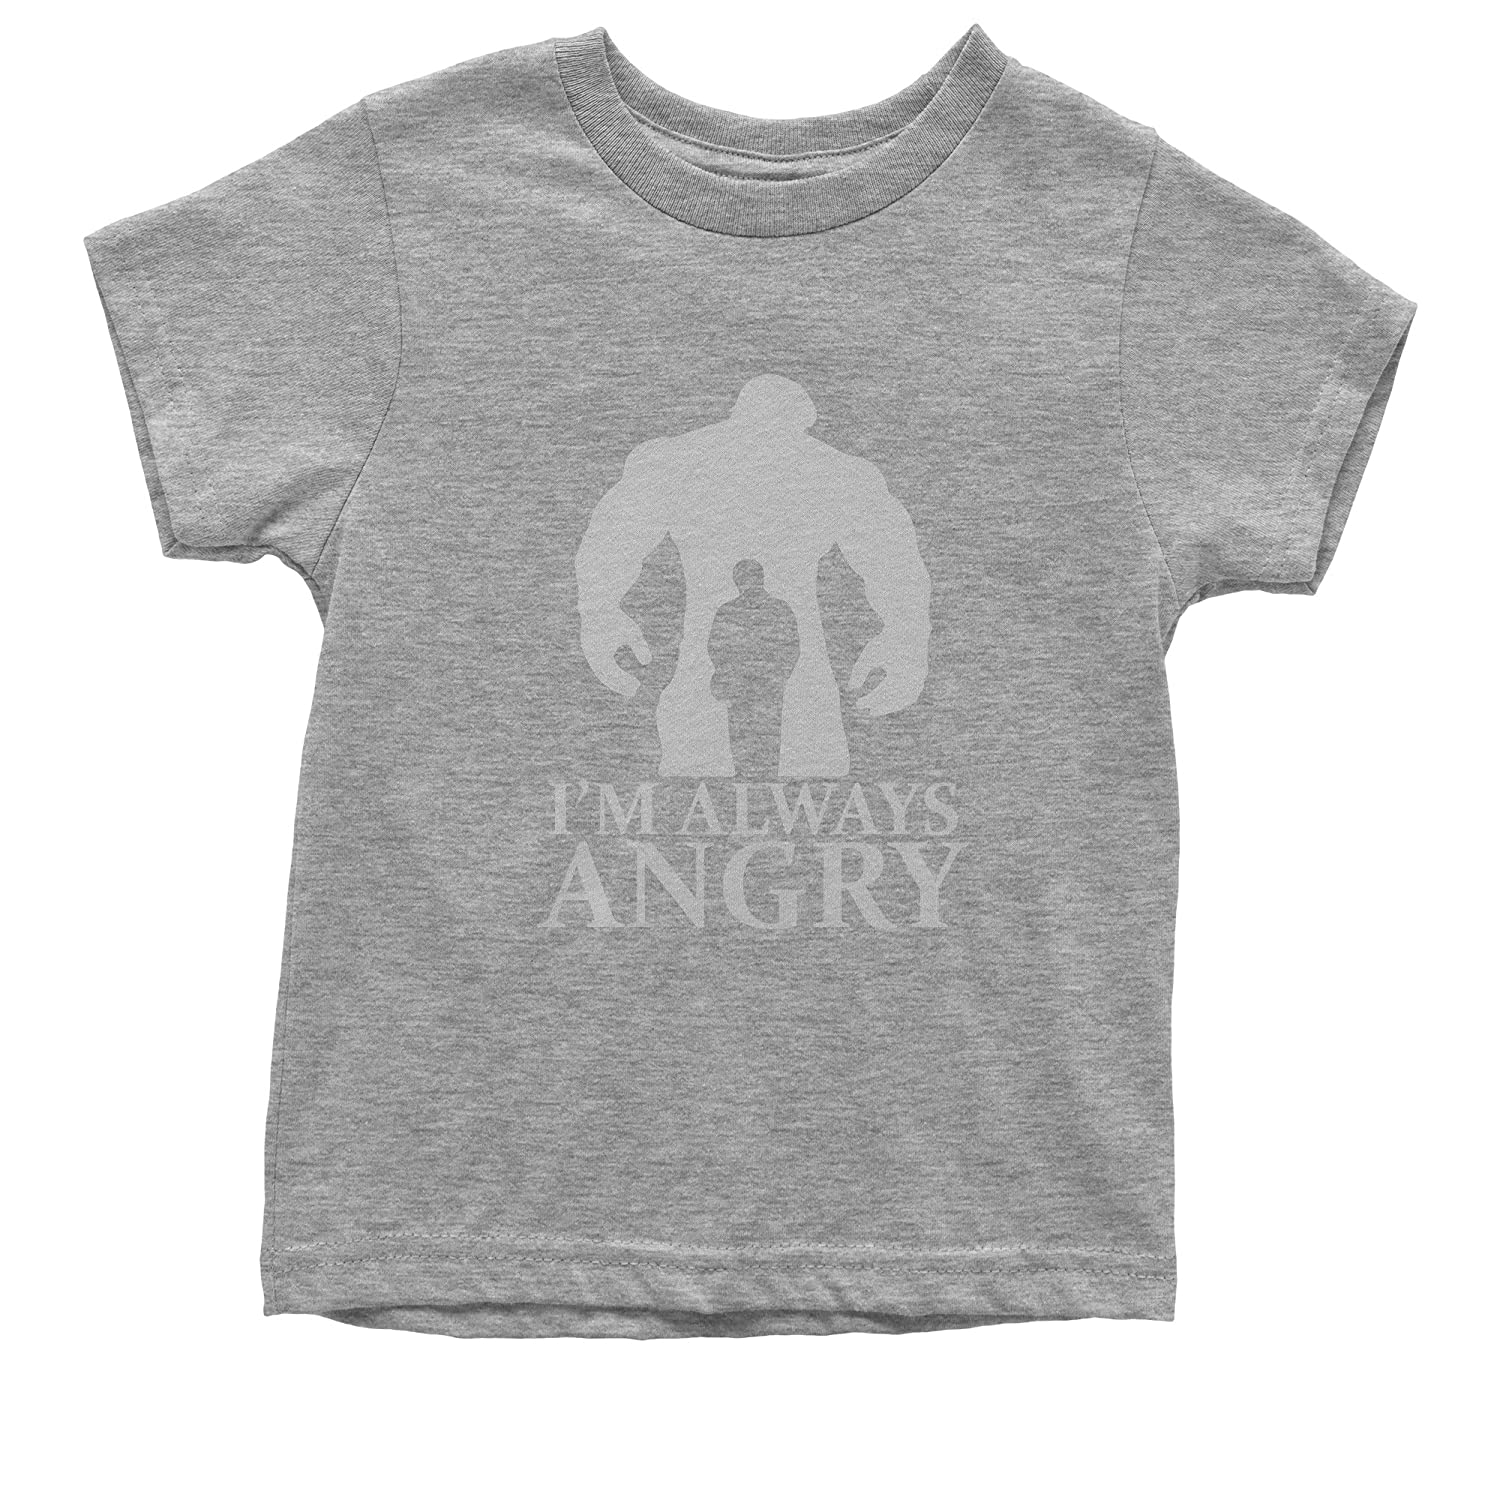 Expression Tees Im Always Angry Youth T-Shirt